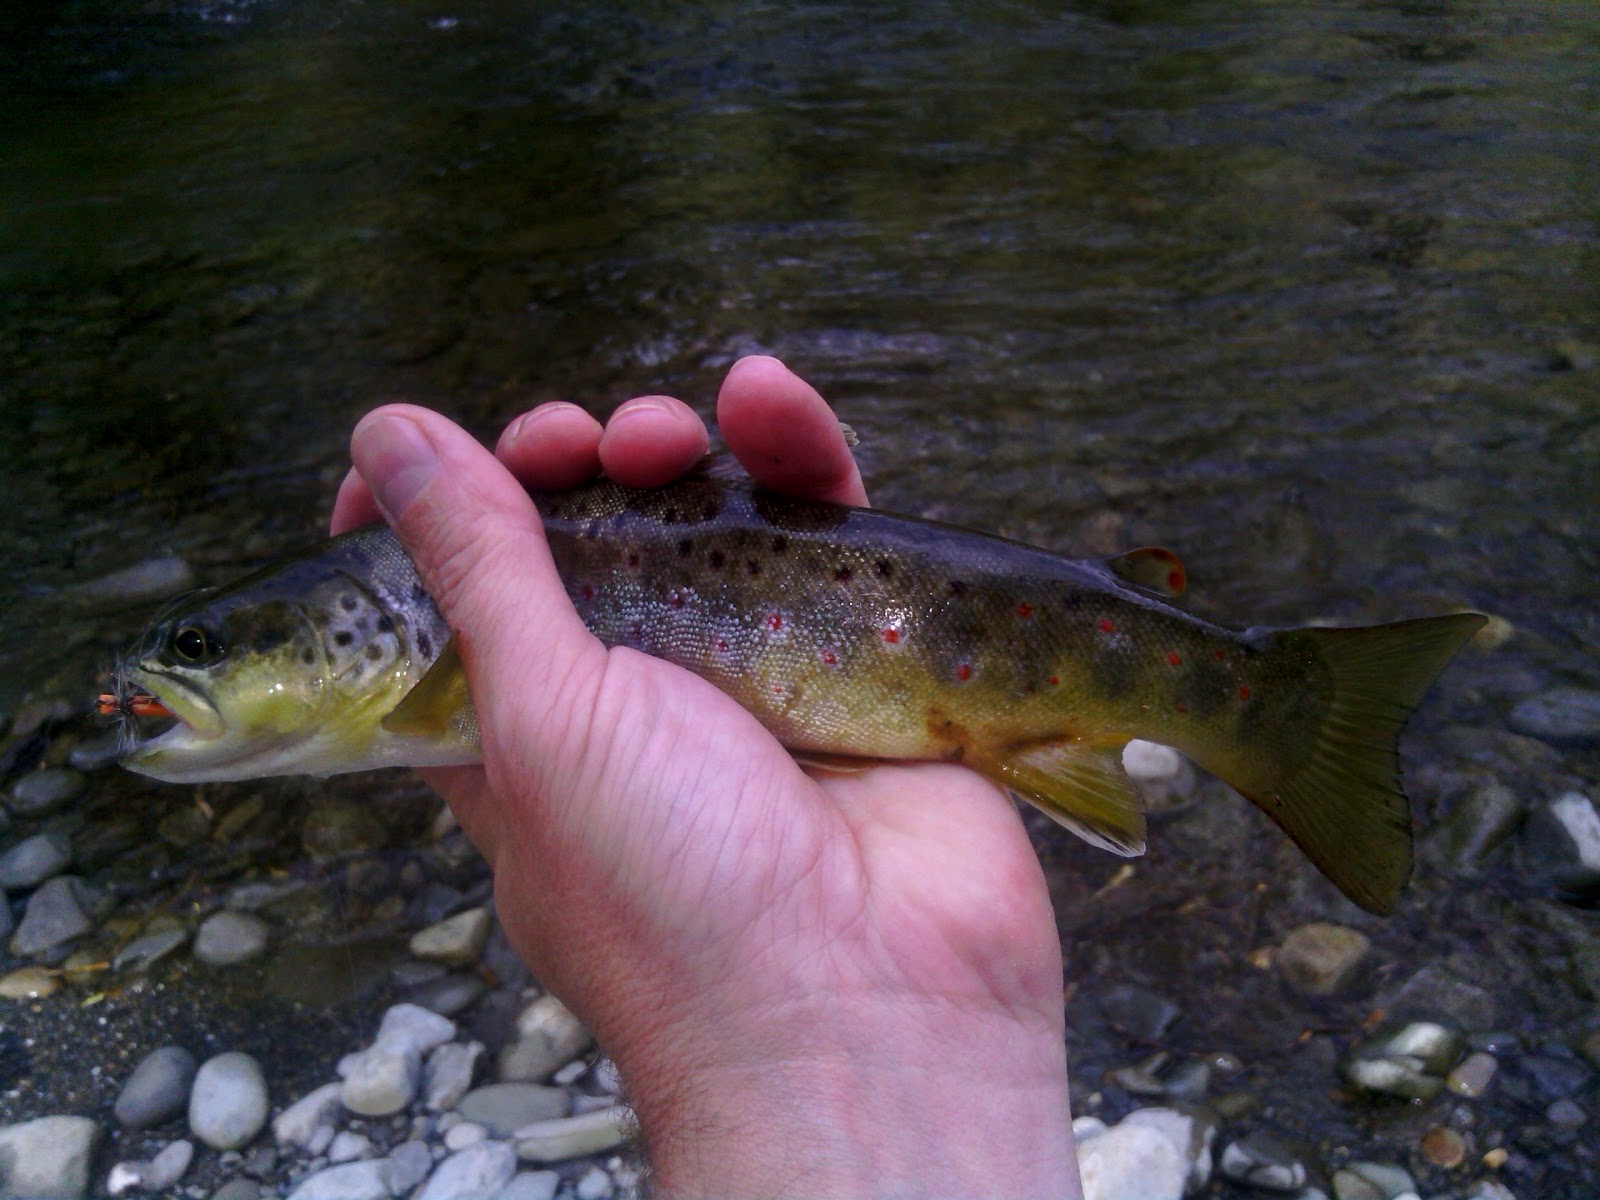 Tennessee fly fishing smoky mountain spring saftey tips 2013 for Smoky mountain trout fishing